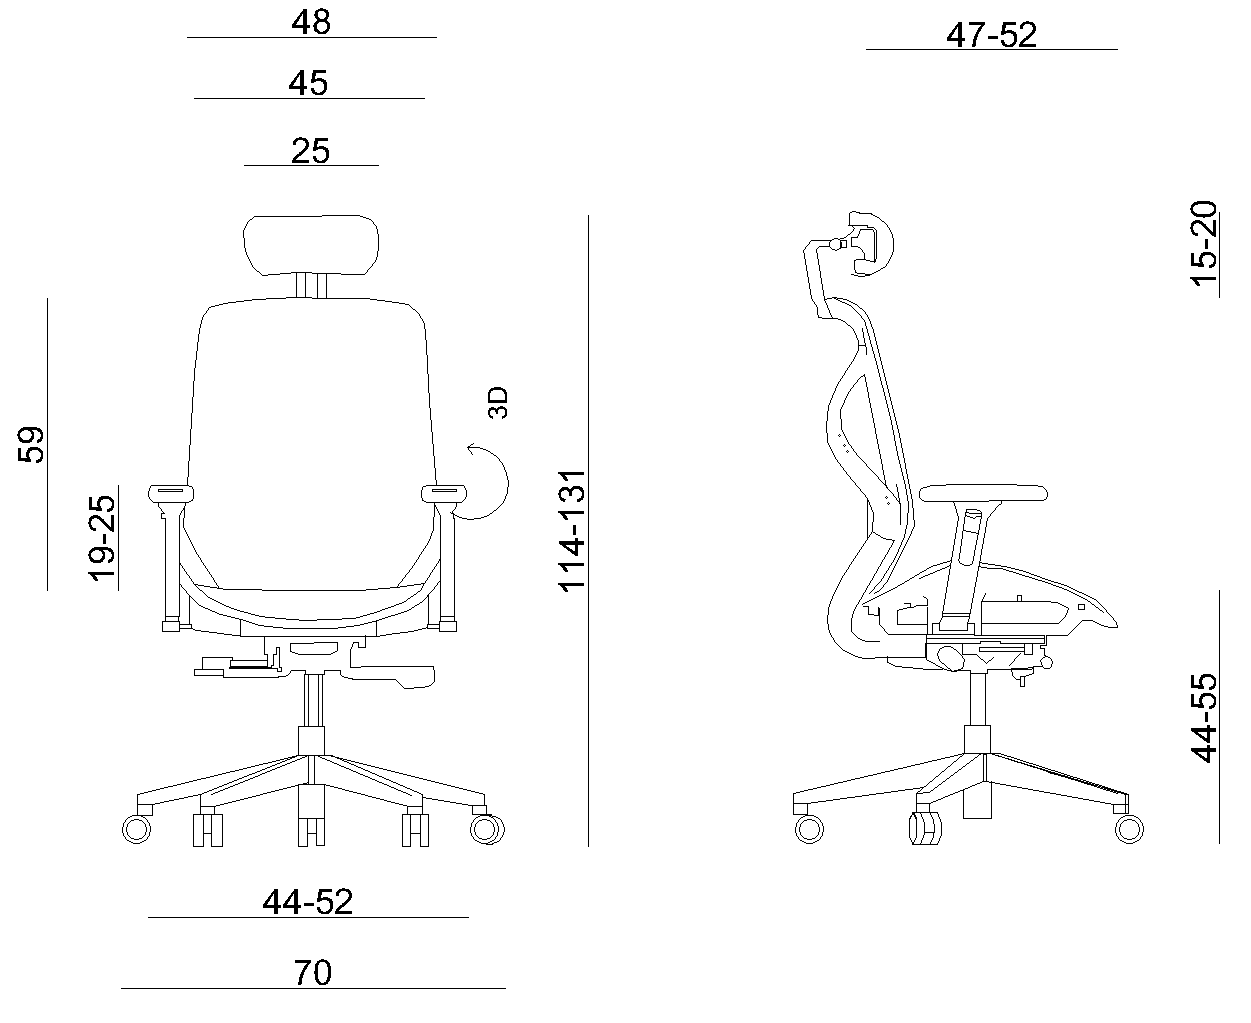 HERO ergonomic office chair mesh gray- dimensions